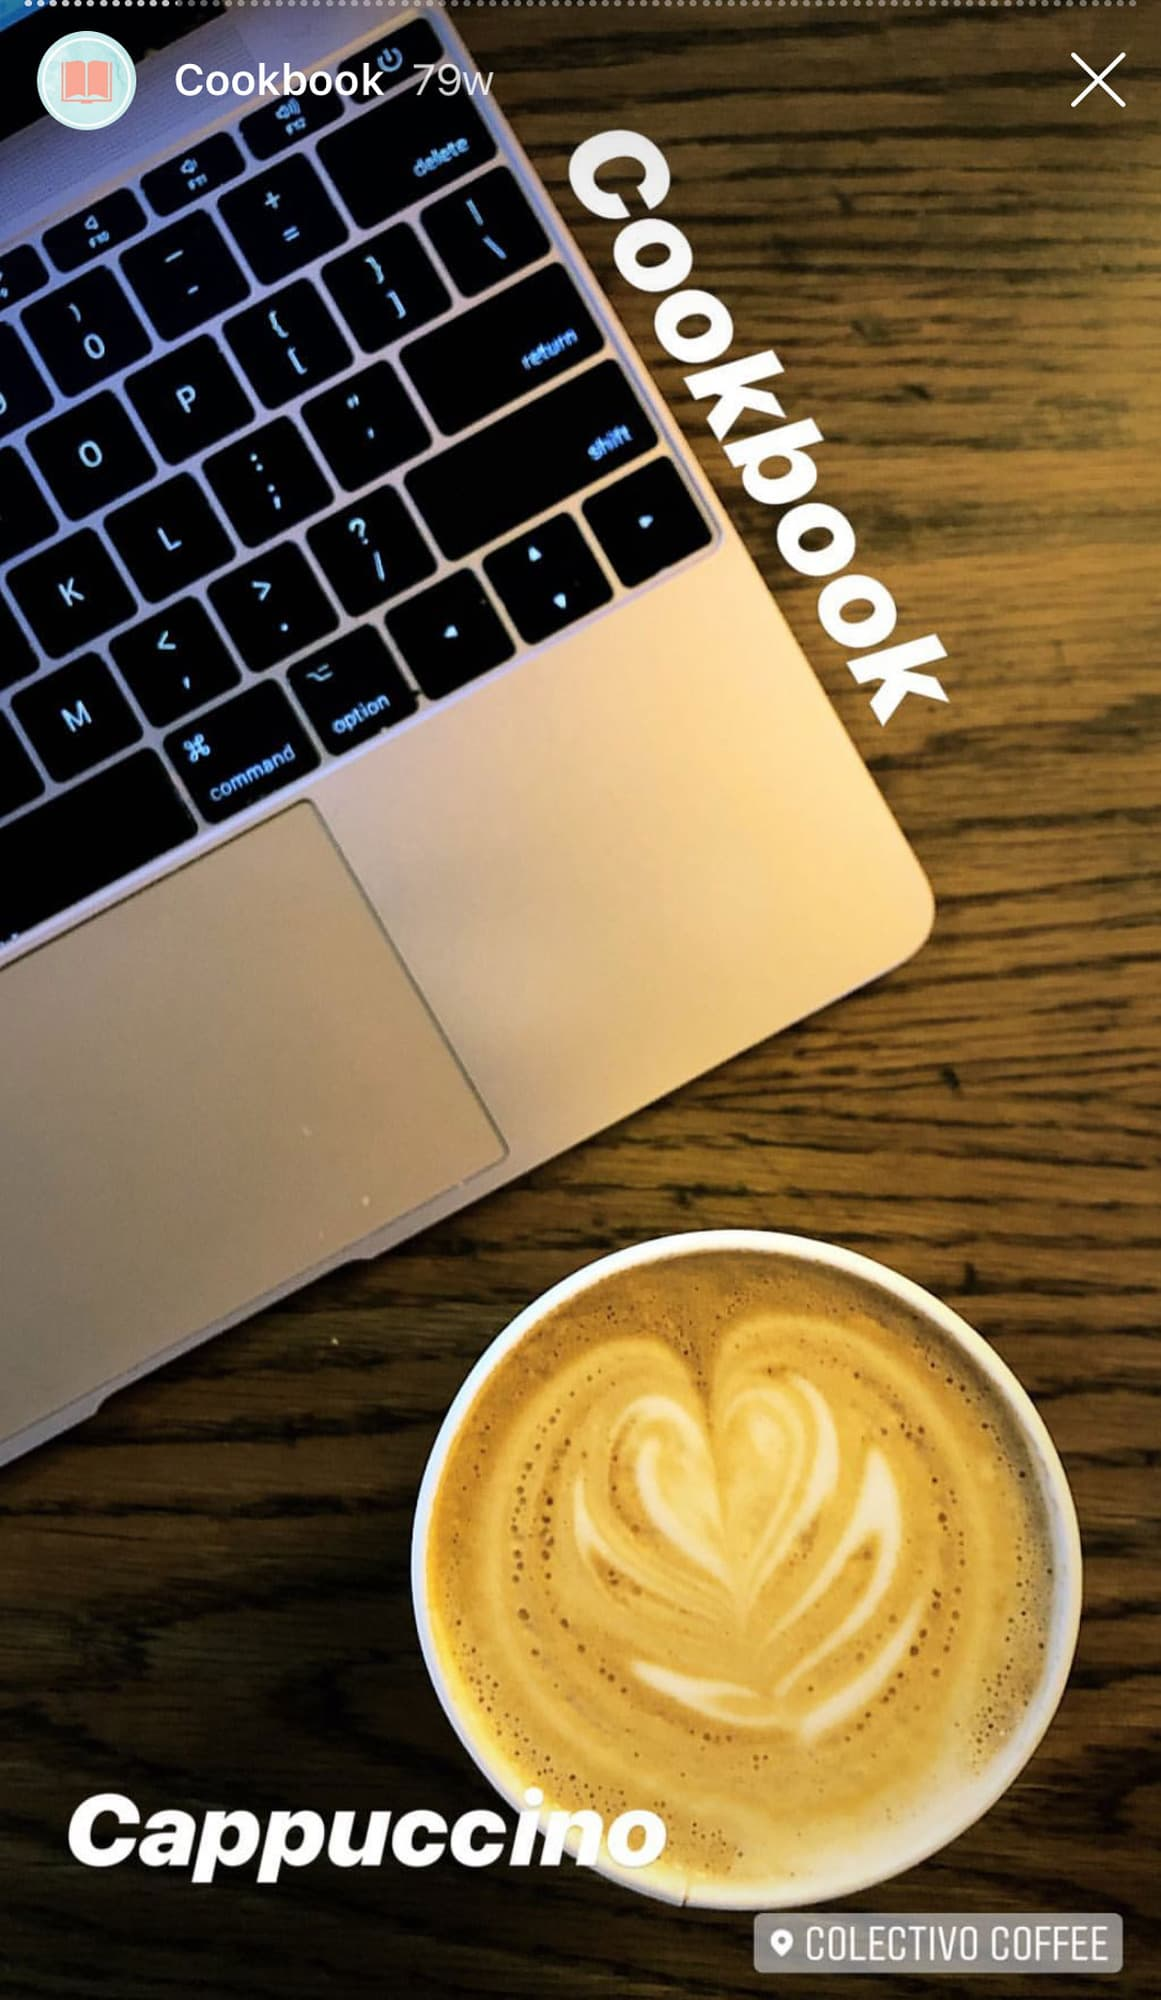 laptop and cappuccino